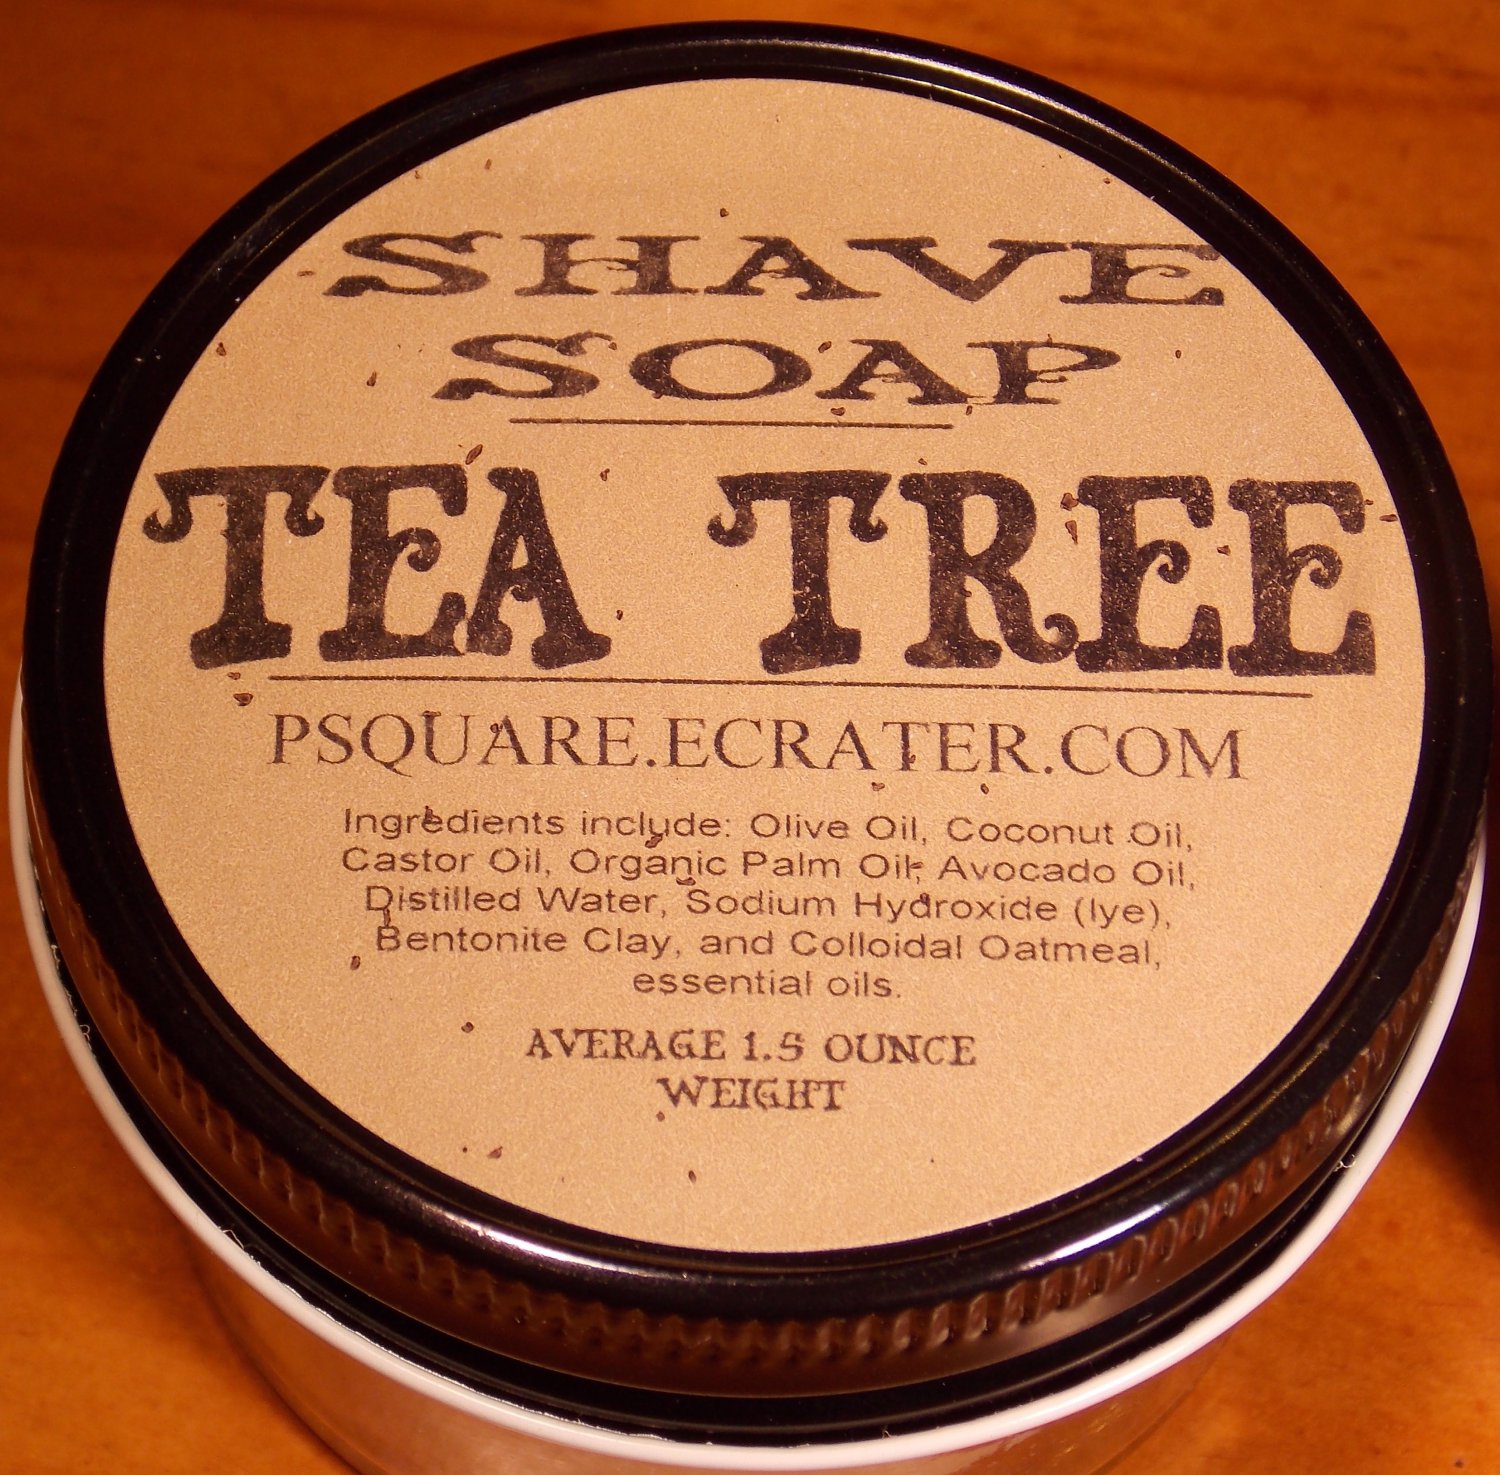 1 - TEA TREE SHAVE SOAP AND GLASS SHAVE JAR